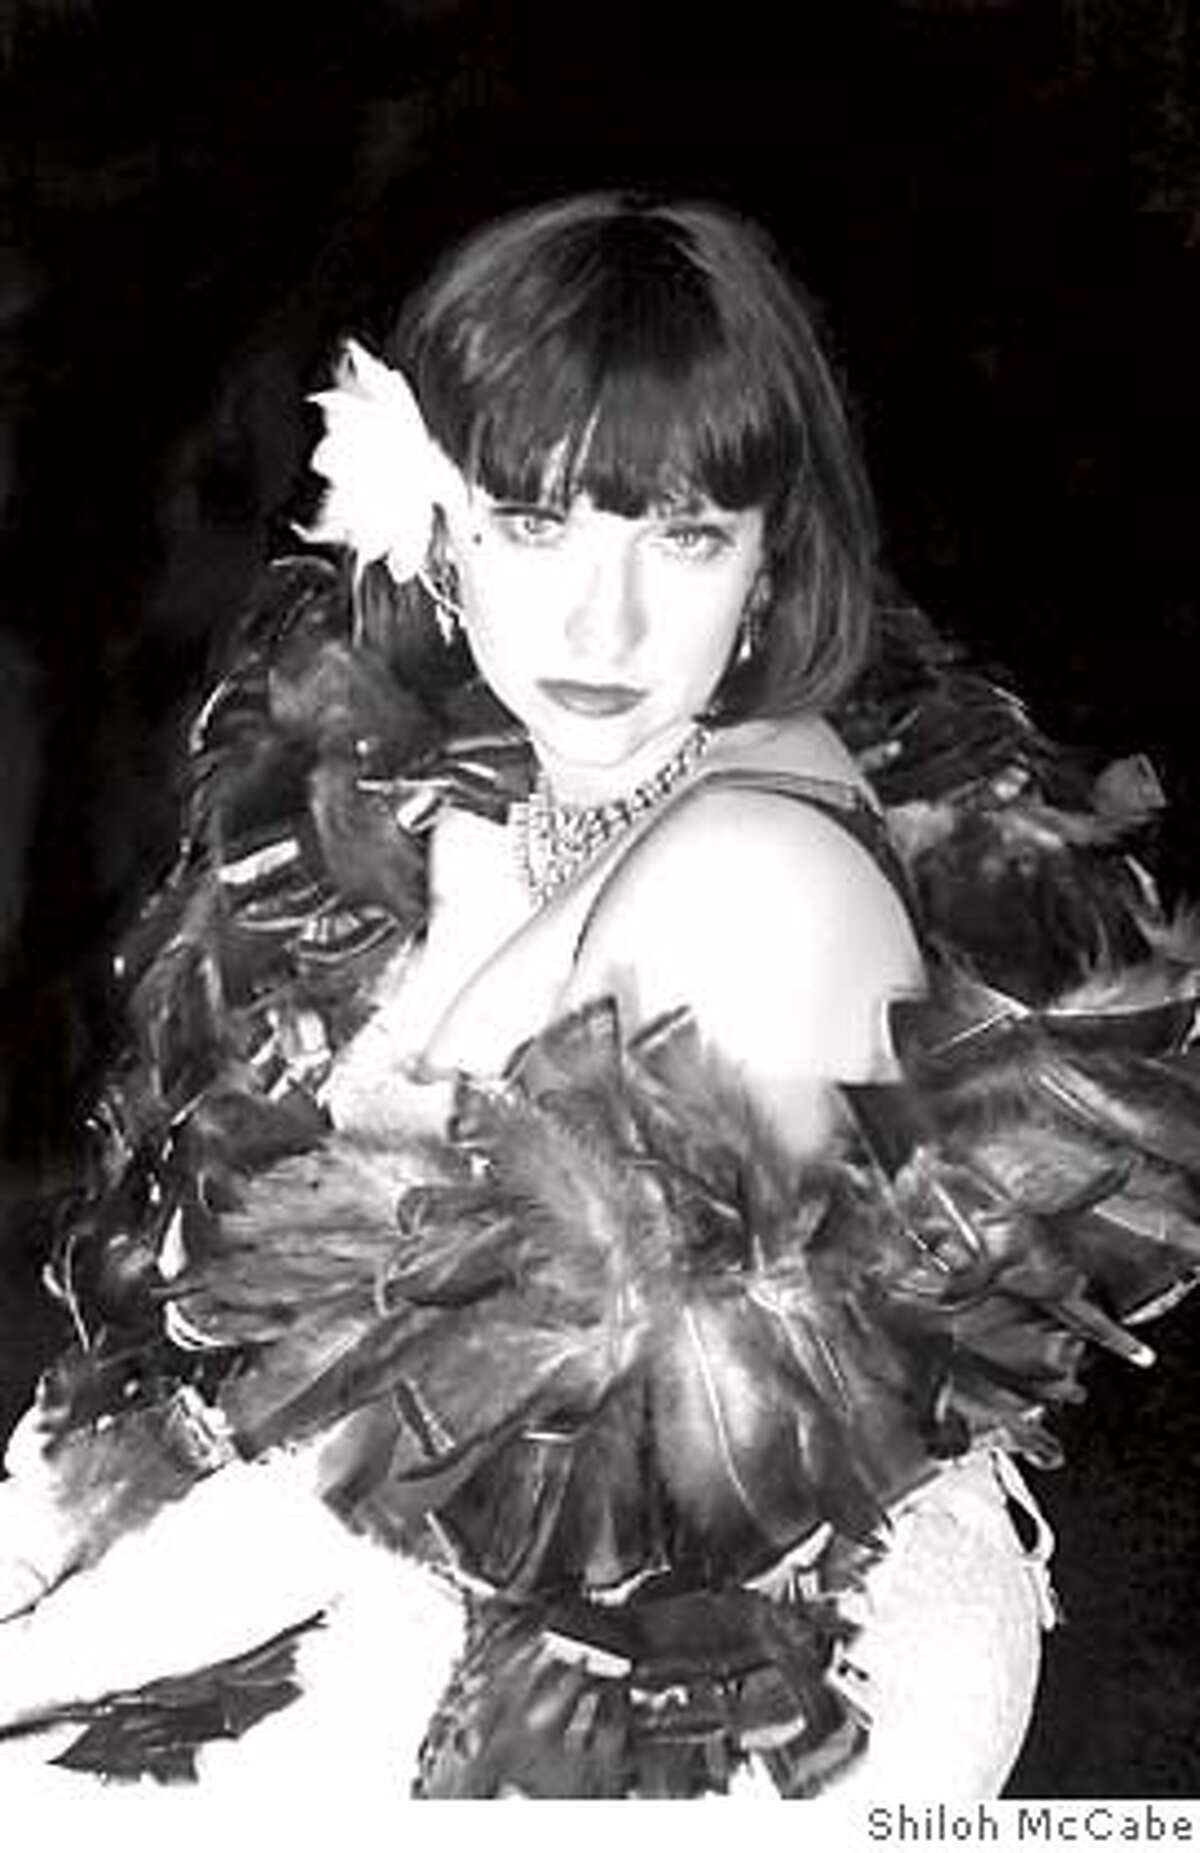 Obituary photo of Heather MacAllister. Credit: Shiloh McCabe Ran on: 02-24-2007 Heather MacAllister created San Franciscos Big Burlesque and the Fat Bottom Revue to feature larger women. Ran on: 02-24-2007 Heather MacAllister created San Franciscos Big Burlesque and the Fat Bottom Revue to feature larger women.